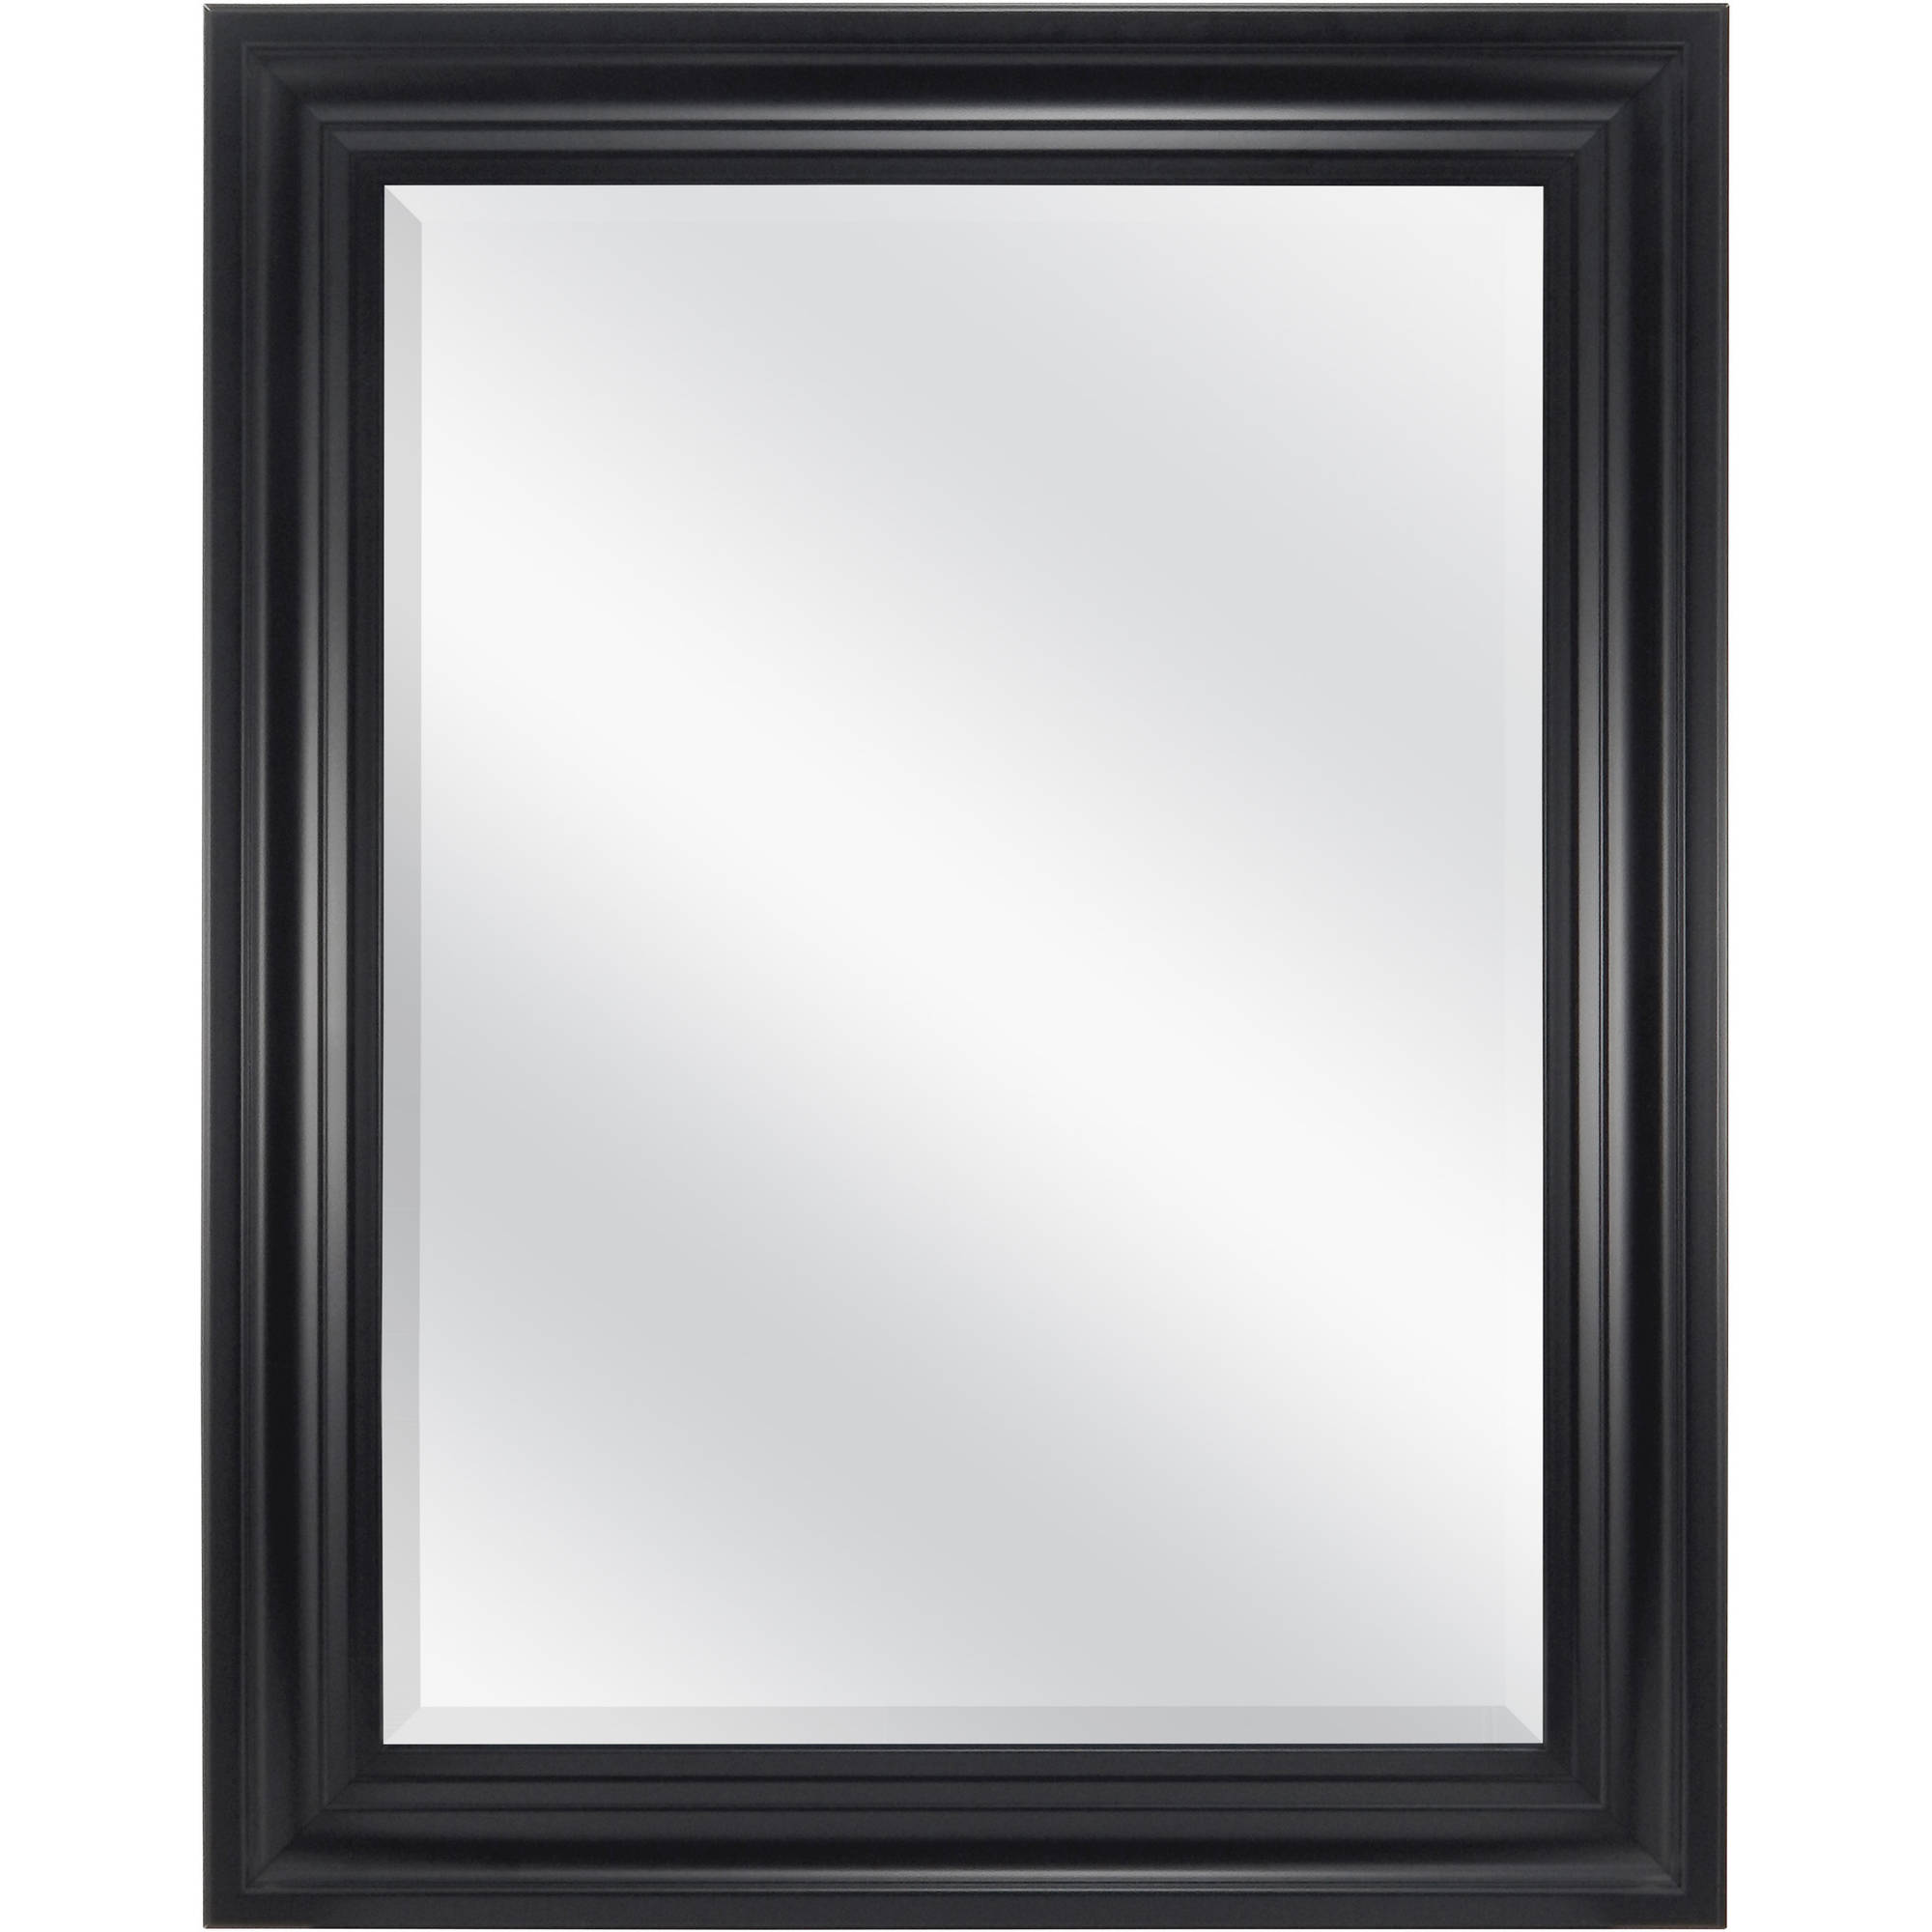 "Beveled Wall Mirror mainstays beveled wall mirror, 23"" x 29"", available in multiple"